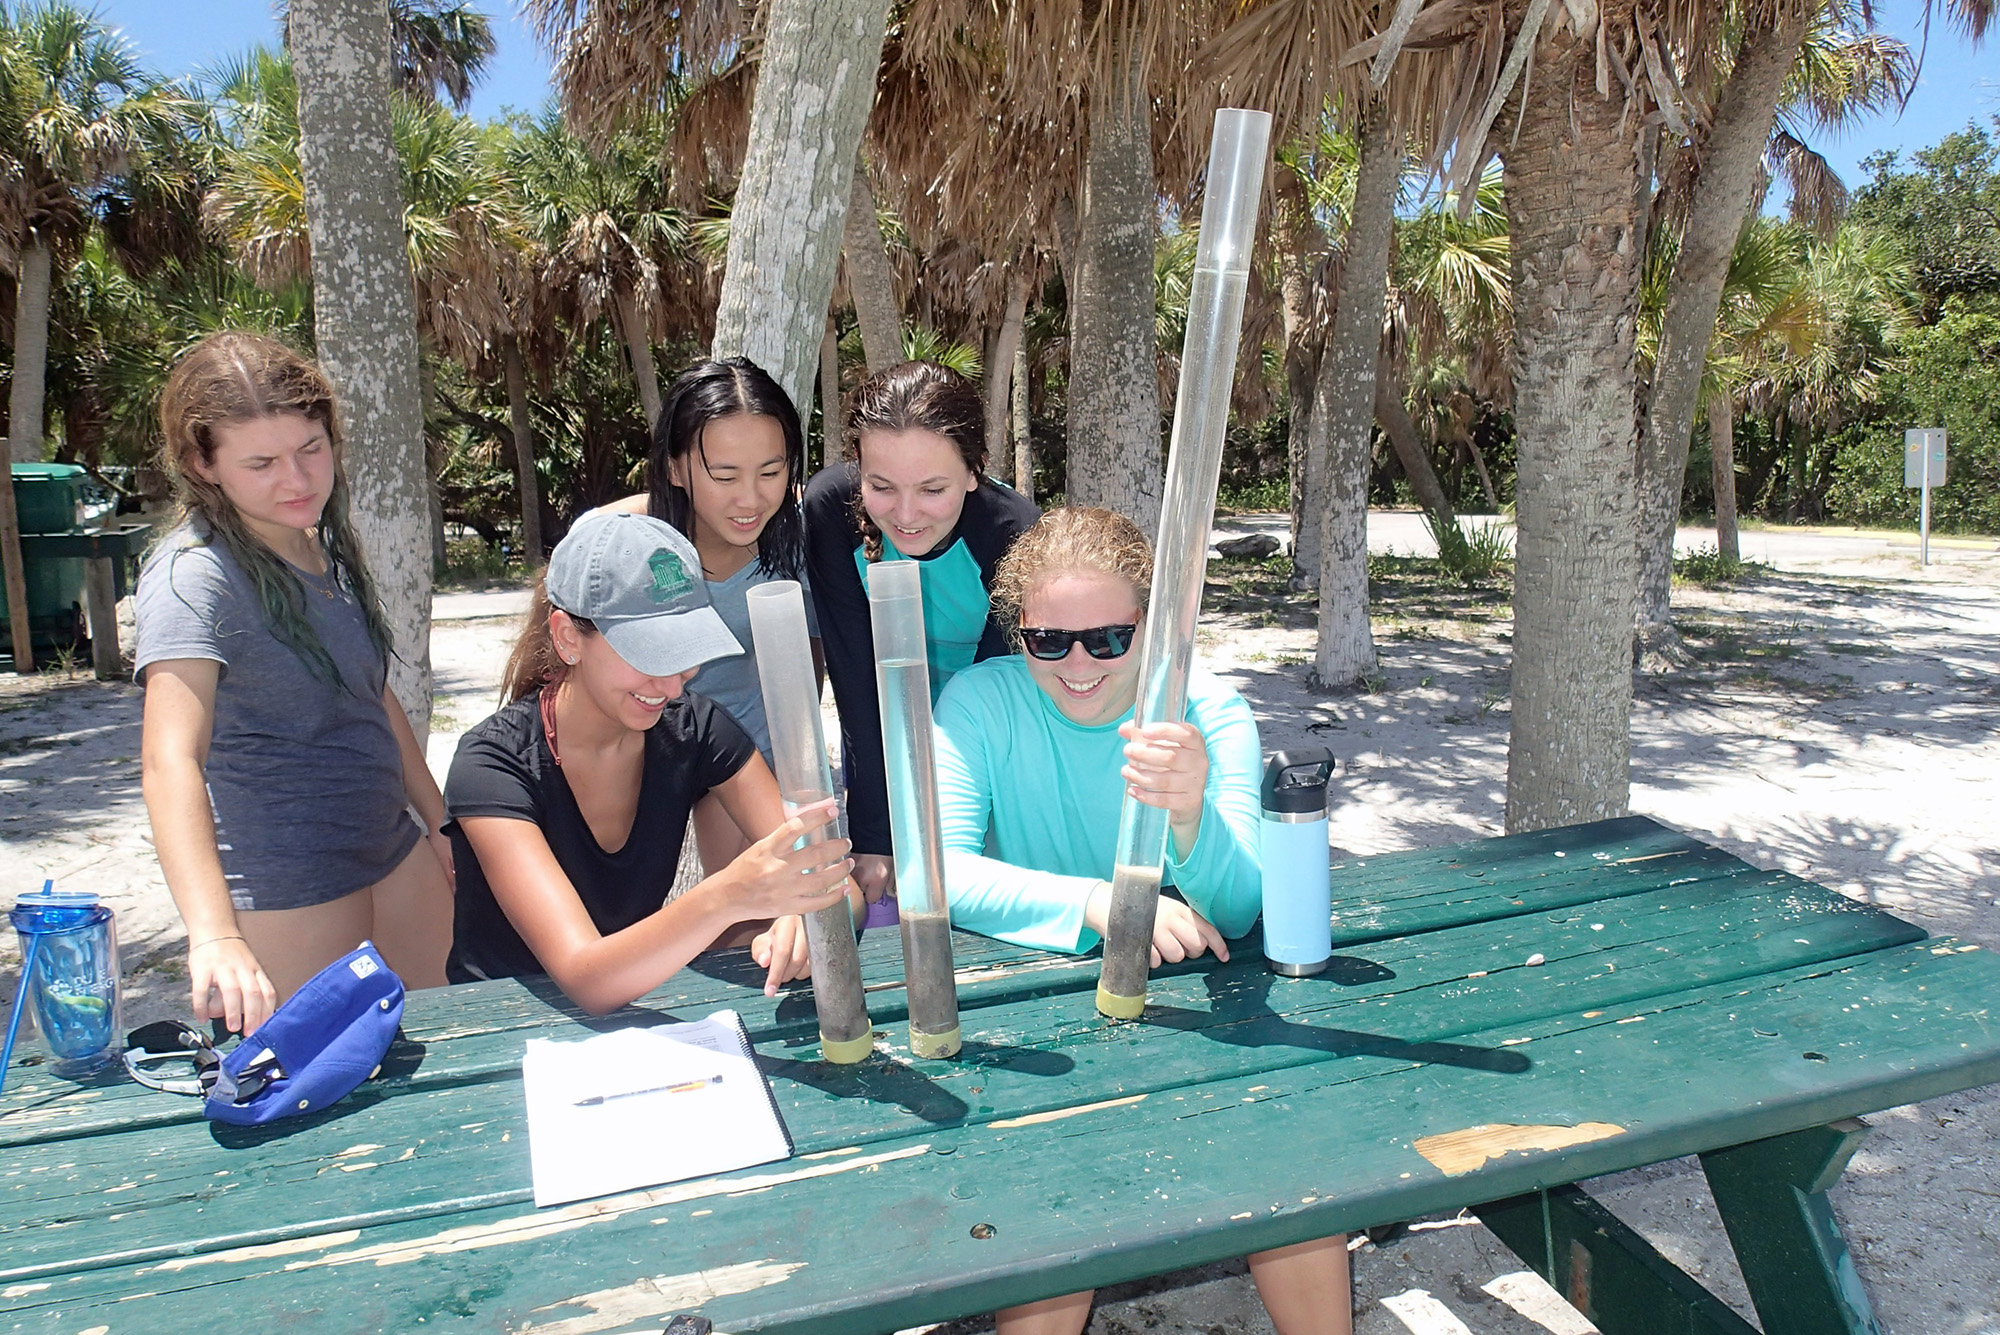 Science mentor Carey Schafer discusses sediment cores taken along a transect in a seagrass bed at Fort De Soto park during this year's Oceanography Camp for Girls.